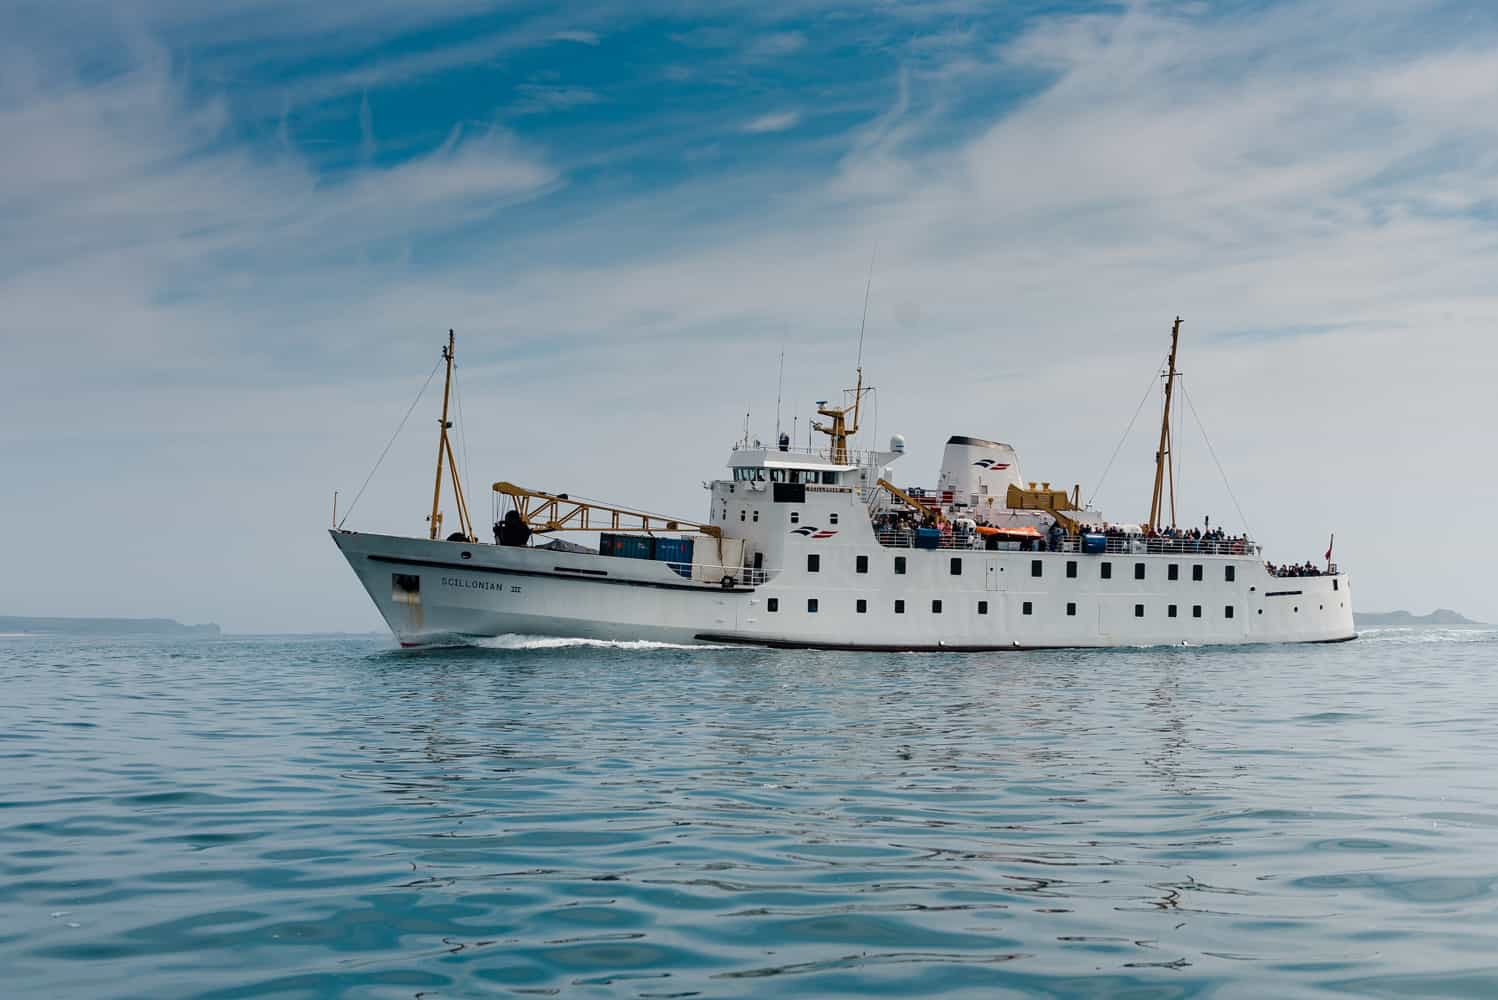 Scillonian III Passenger Ferry, Isles of Scilly